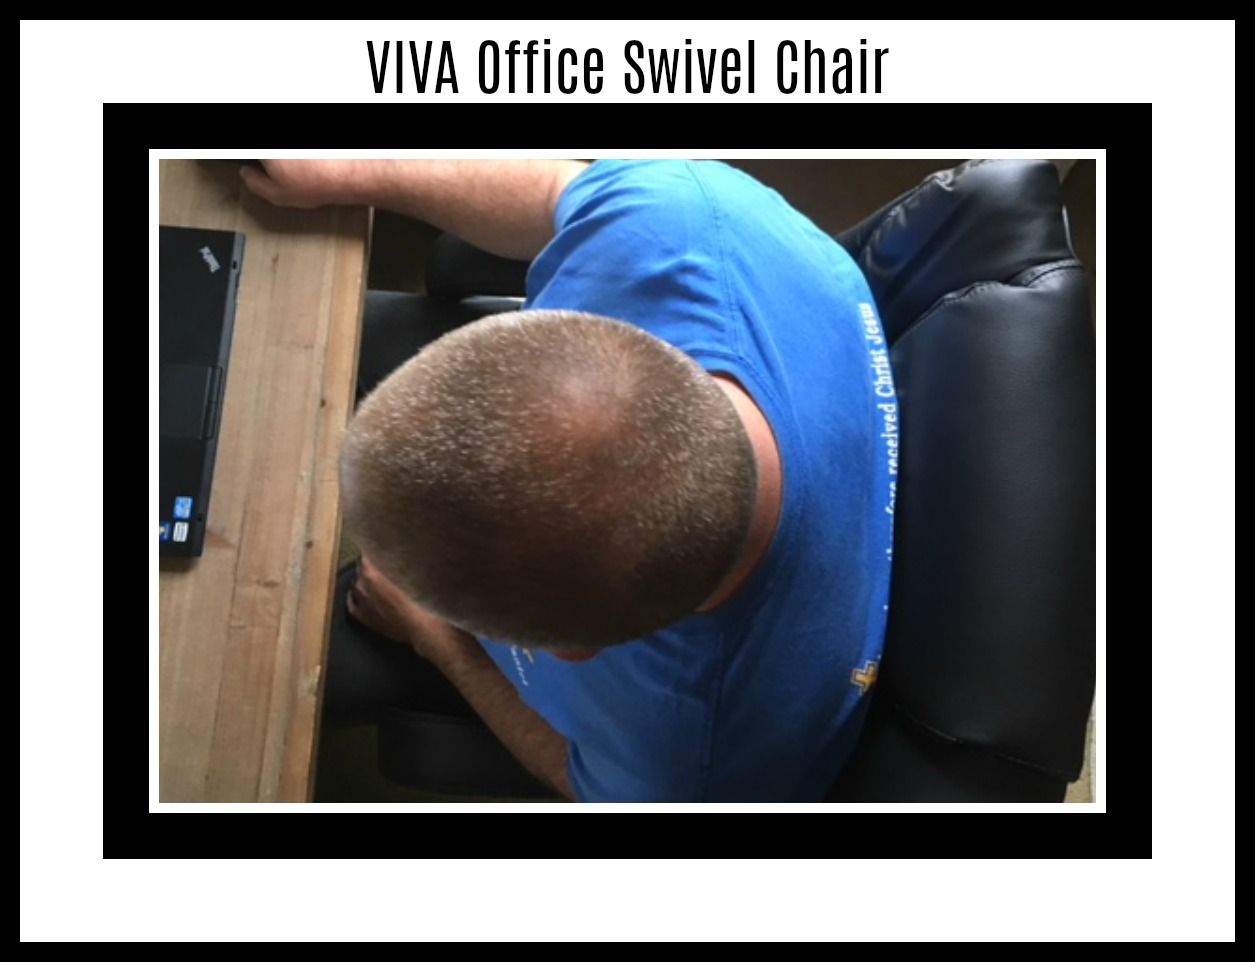 VIVA Office Swivel Chair